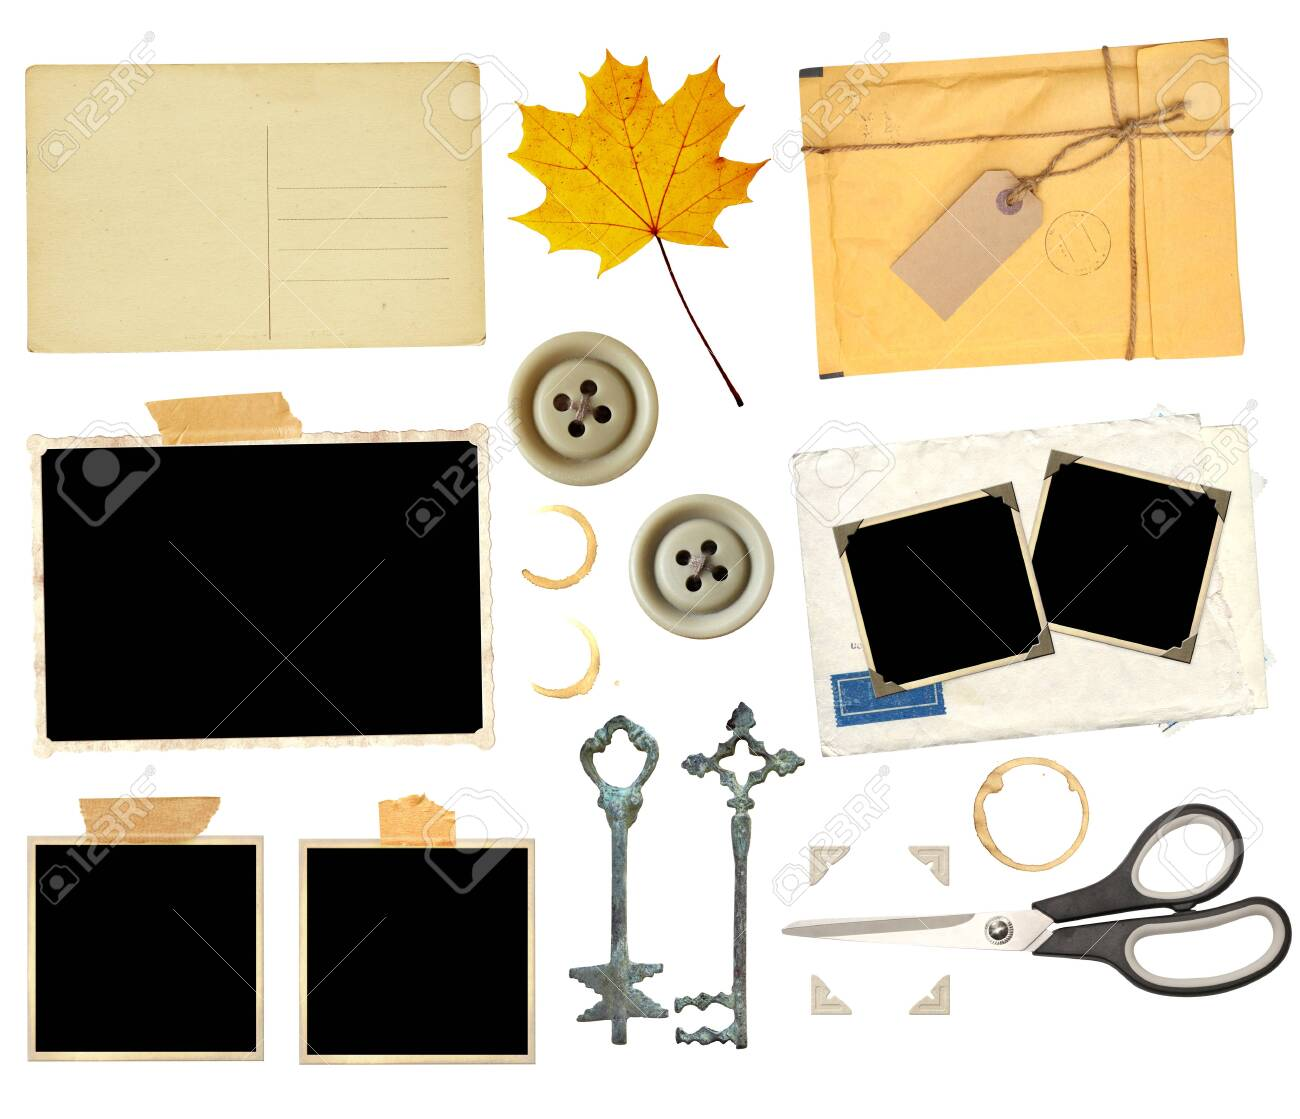 Set of elements for scrapbooking. Object isolated on white background. Vintage scissors, retro paper card, dry yellow maple leaf, keys, sellotape, stain of tea, coffee, old photo, postcard, button, photo corners - 134043671